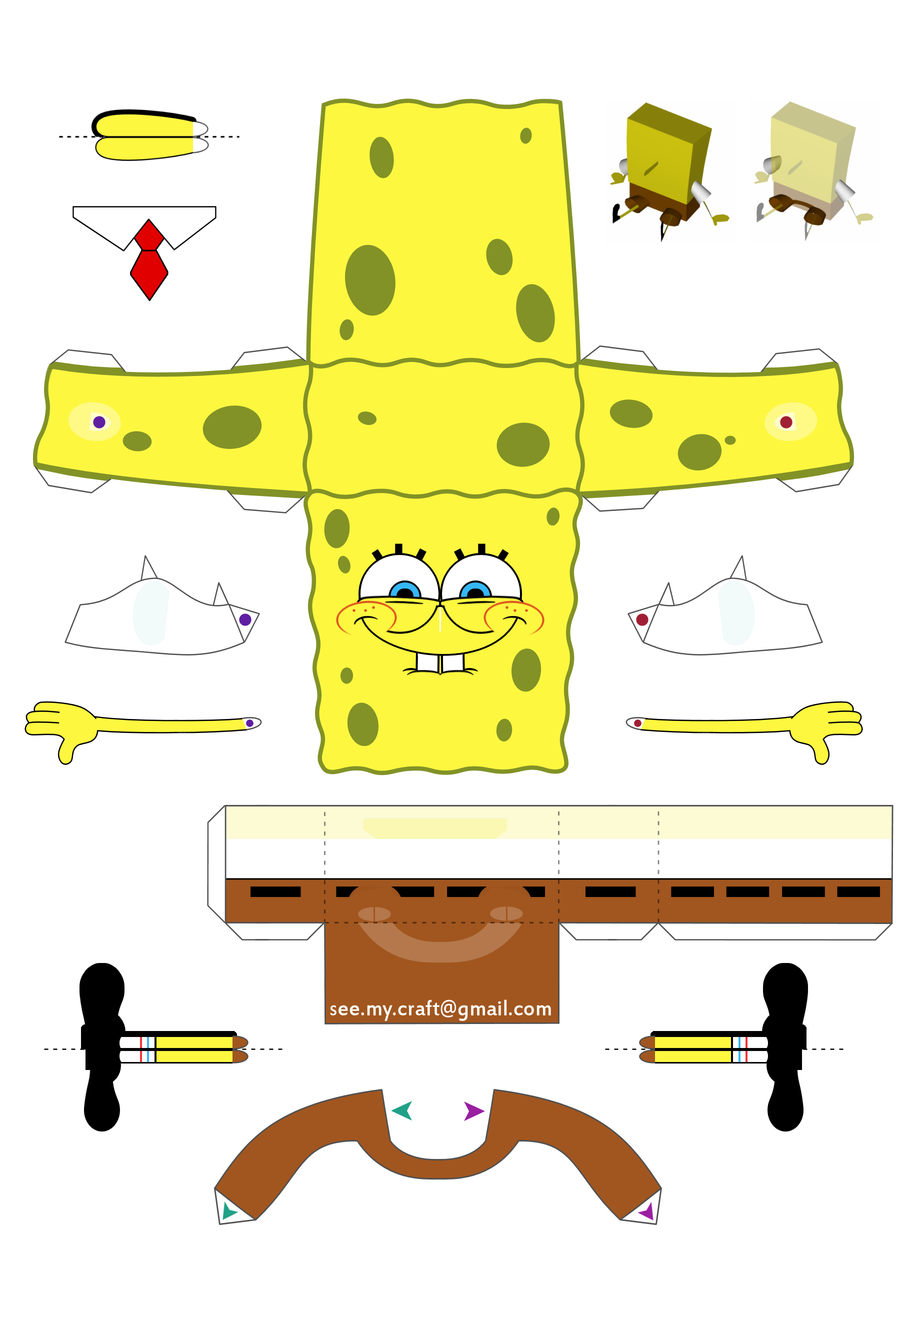 Spongebob Papercraft Instructions By Kamibox On Deviantart